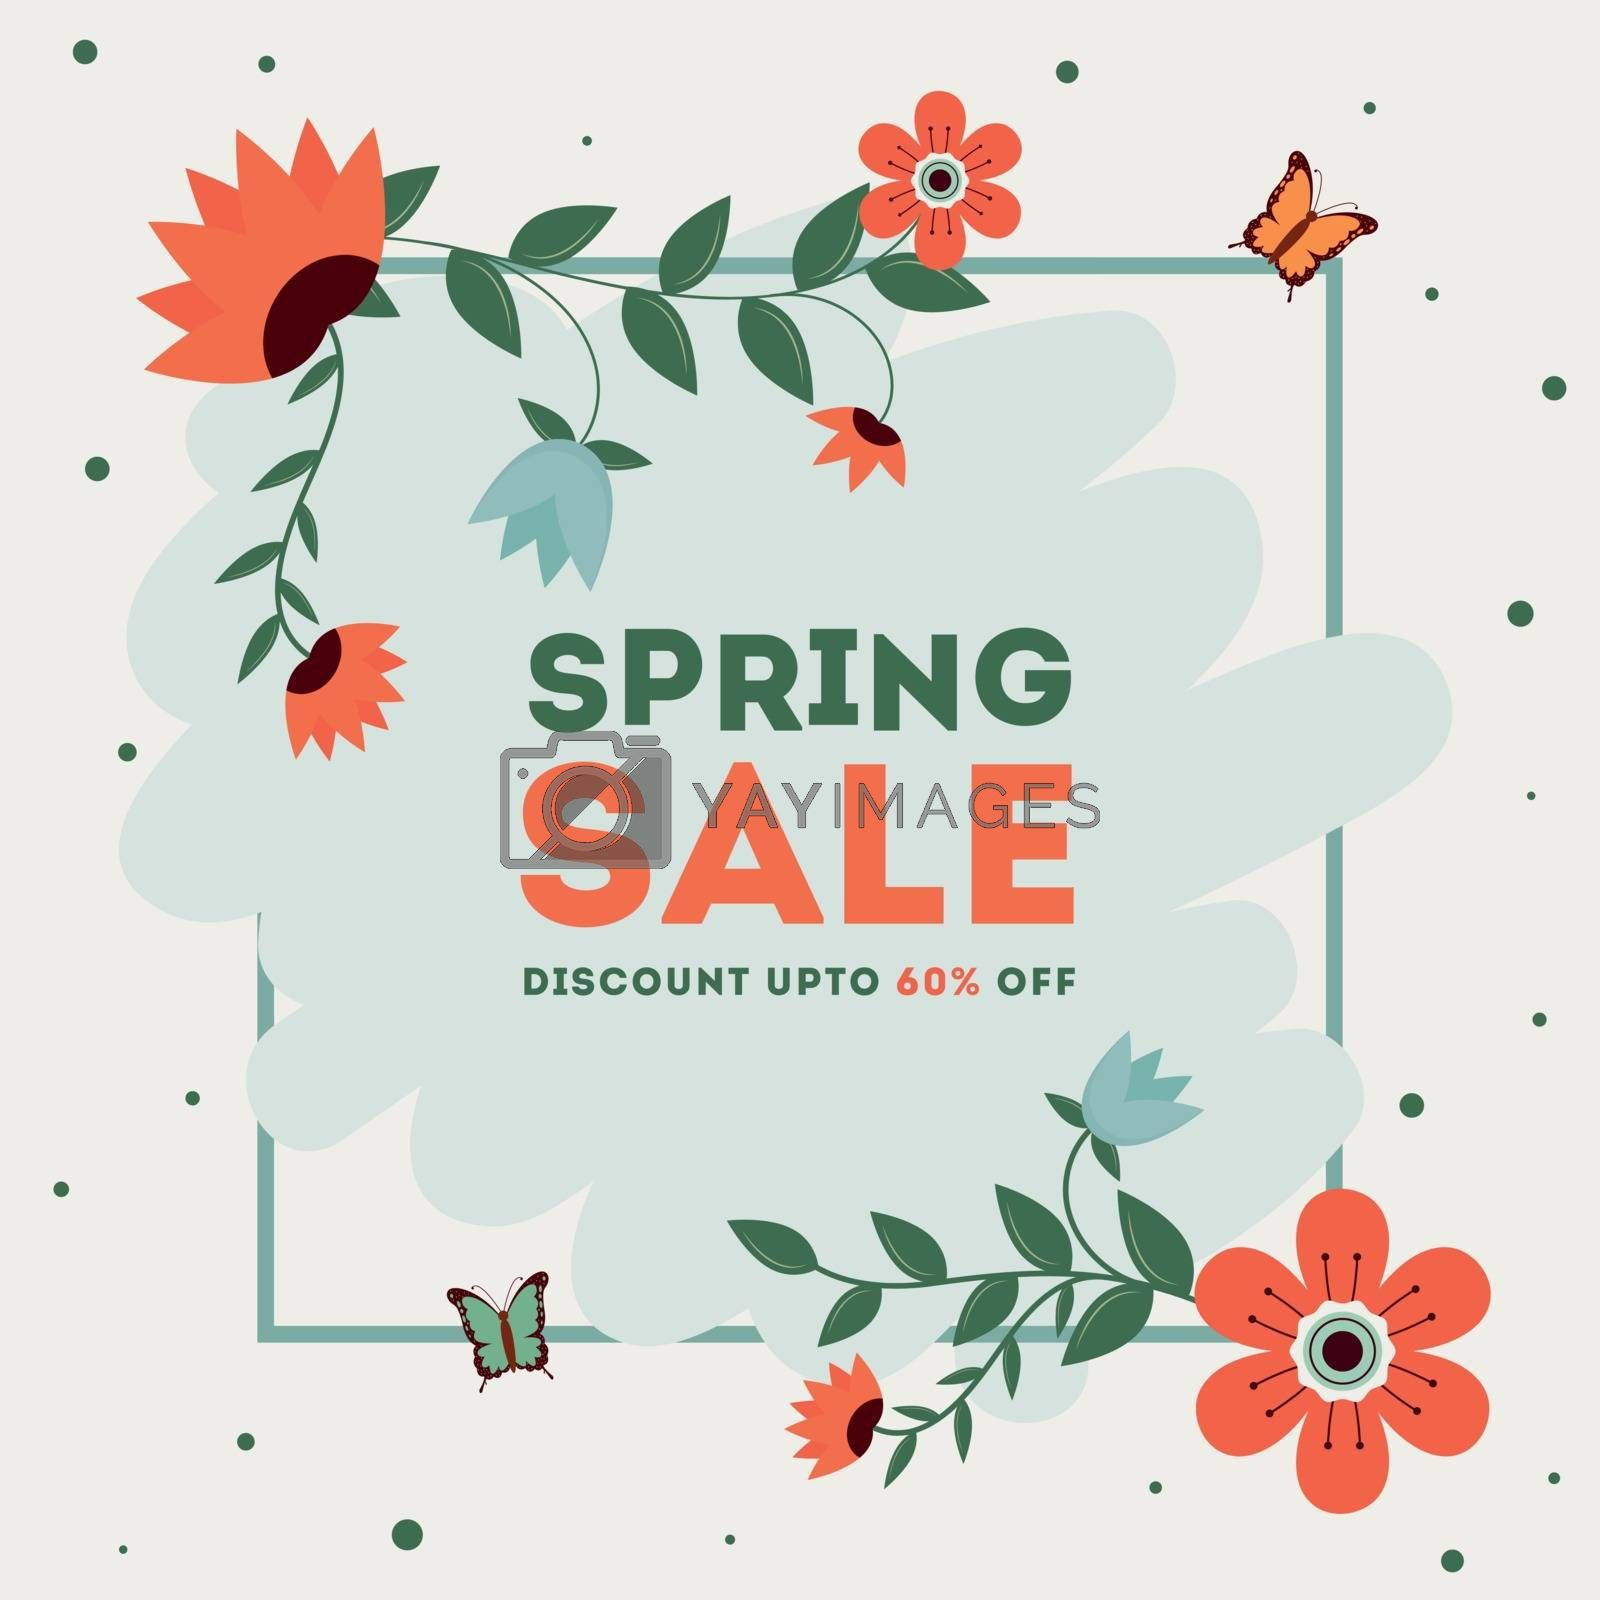 Royalty free image of Spring sale template or poster design with 60% discount offer an by aispl